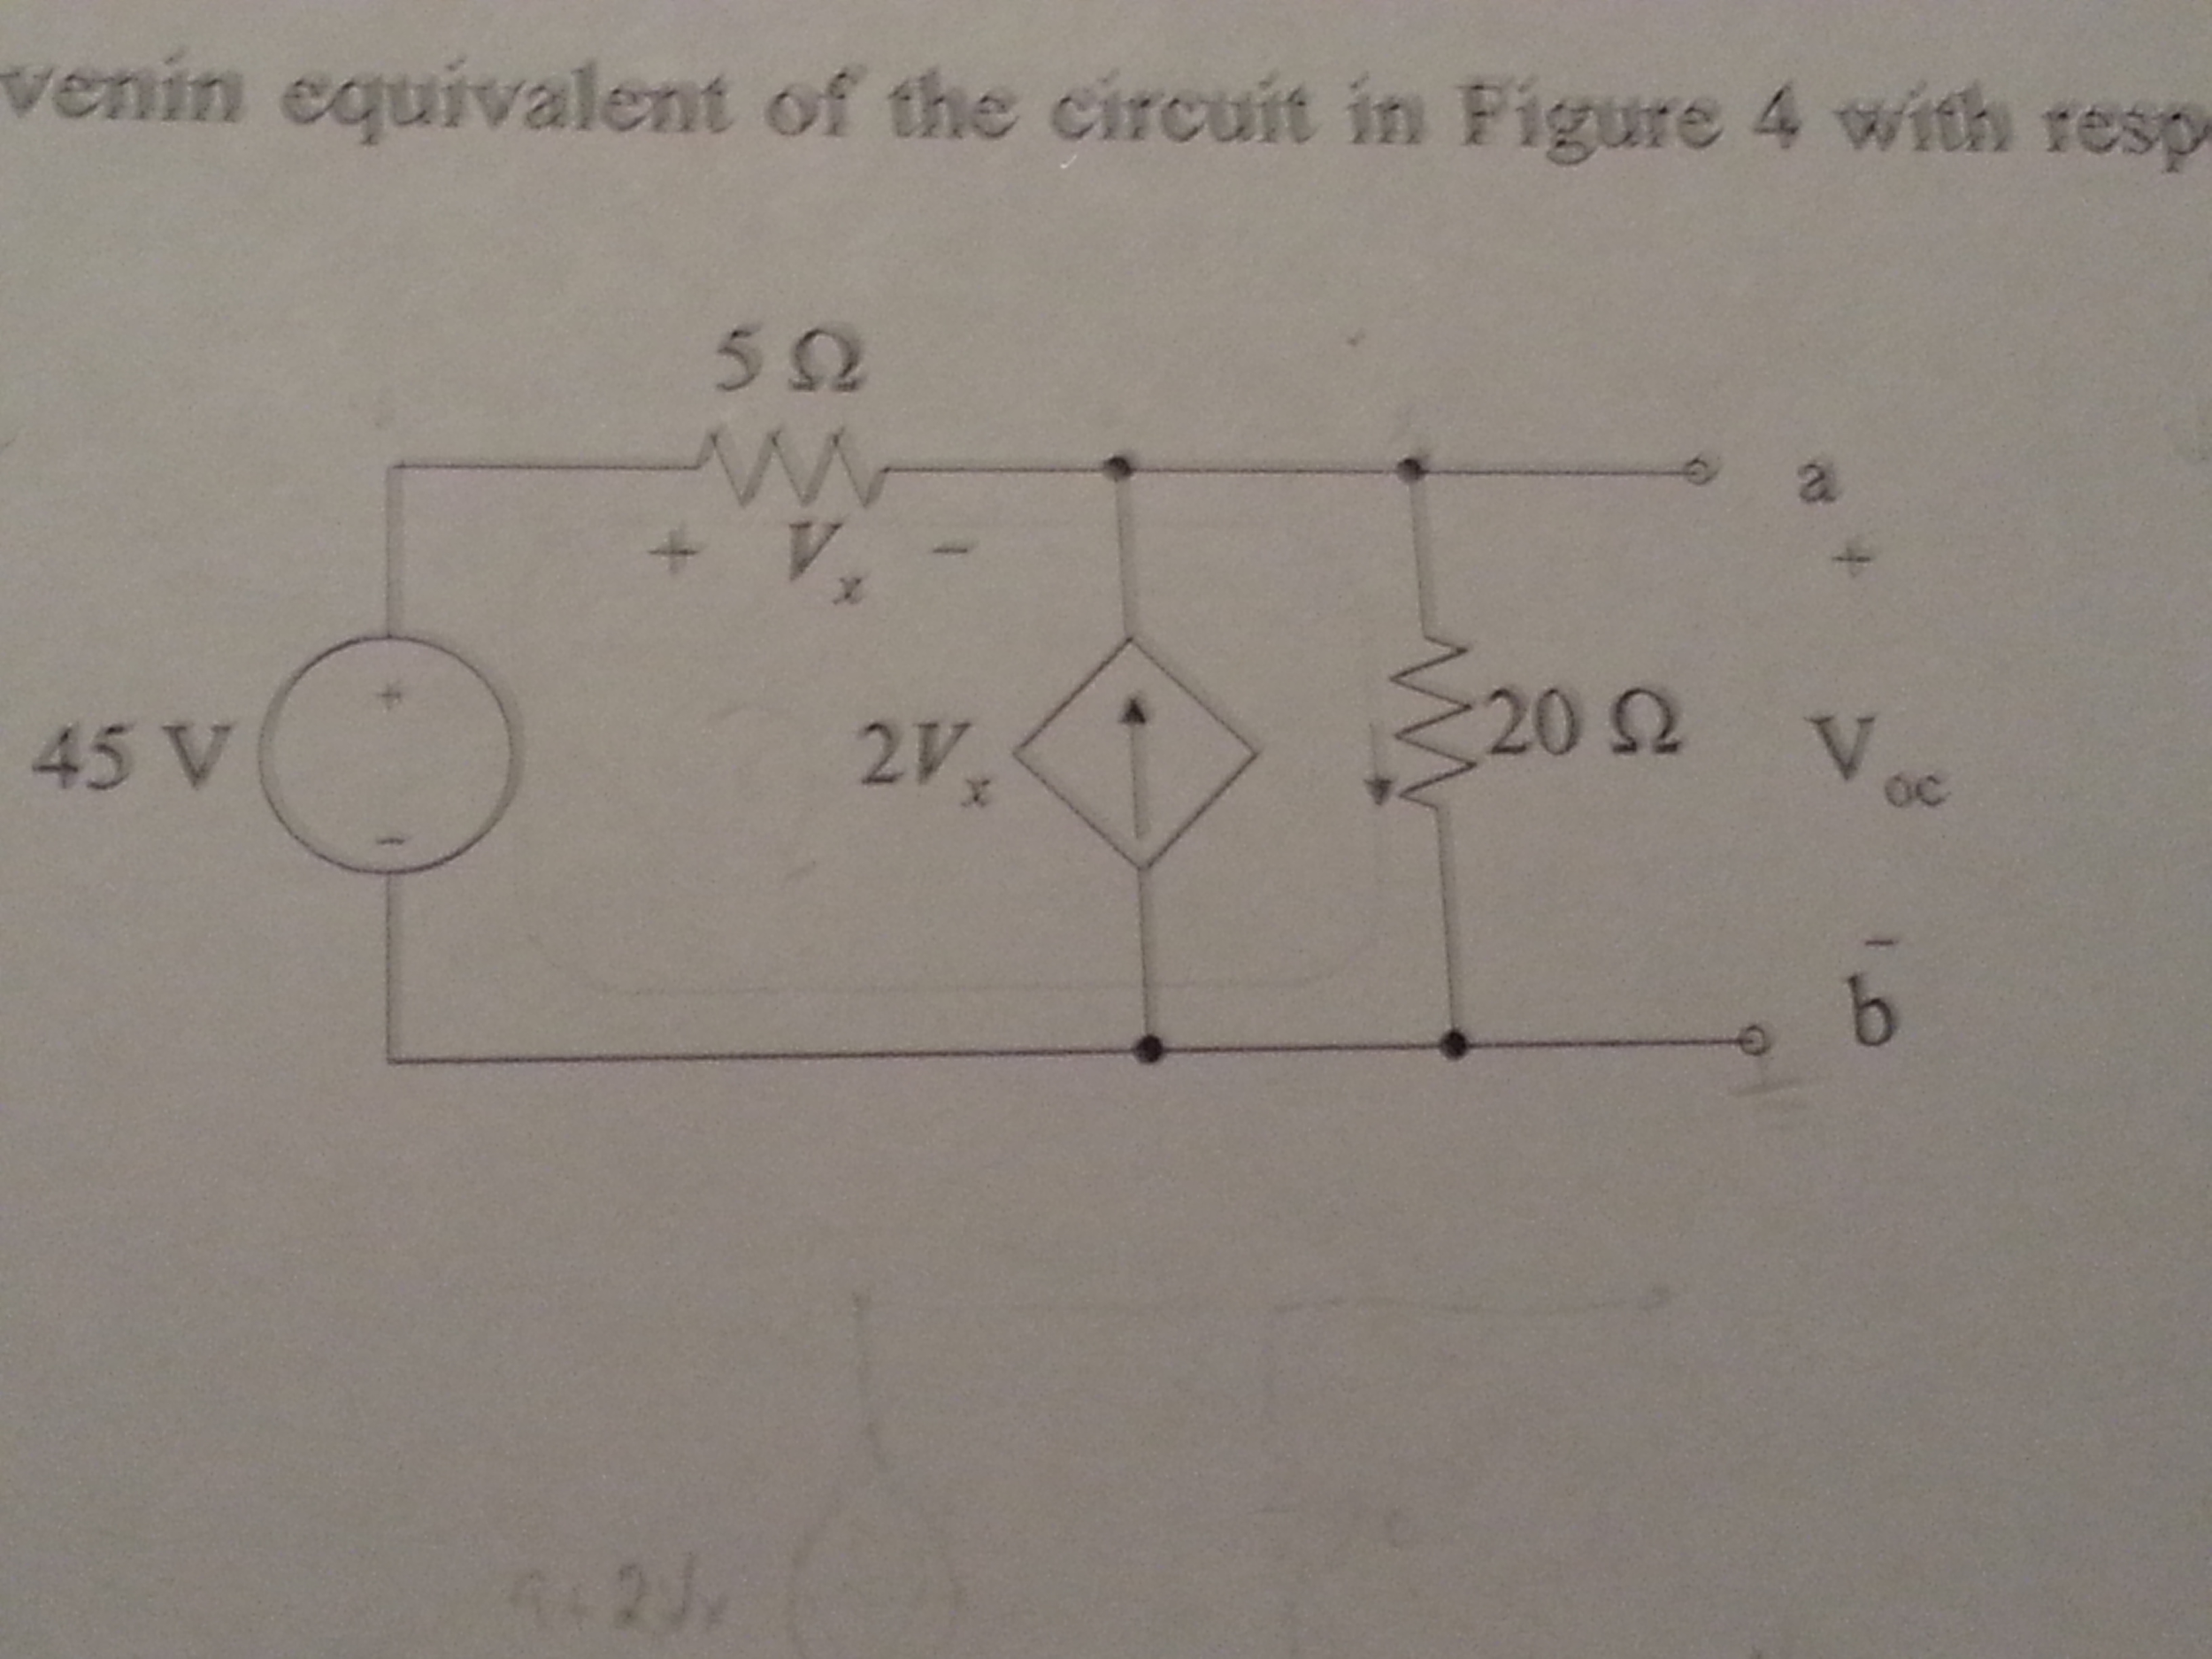 venin equivalent of the circuit in Figure 4 with r